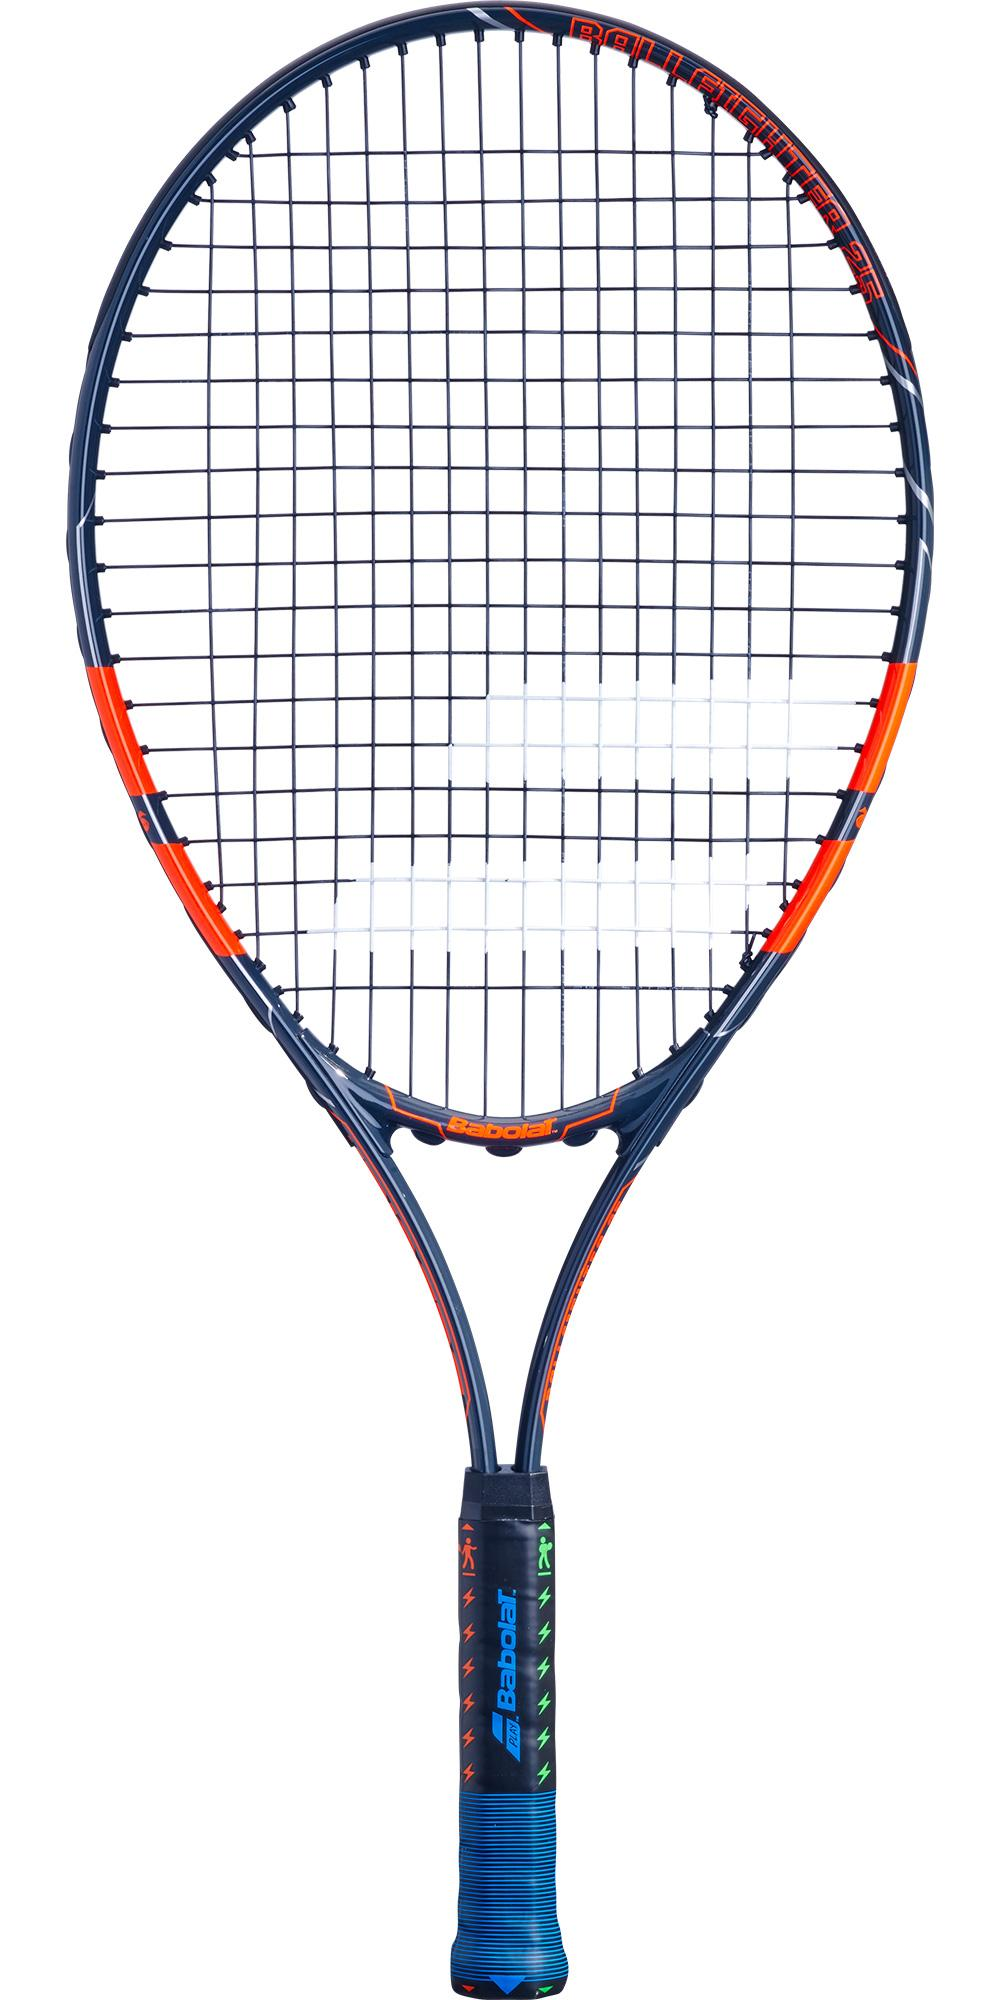 Babolat Ballfighter 25 inch Junior Tennis Racket